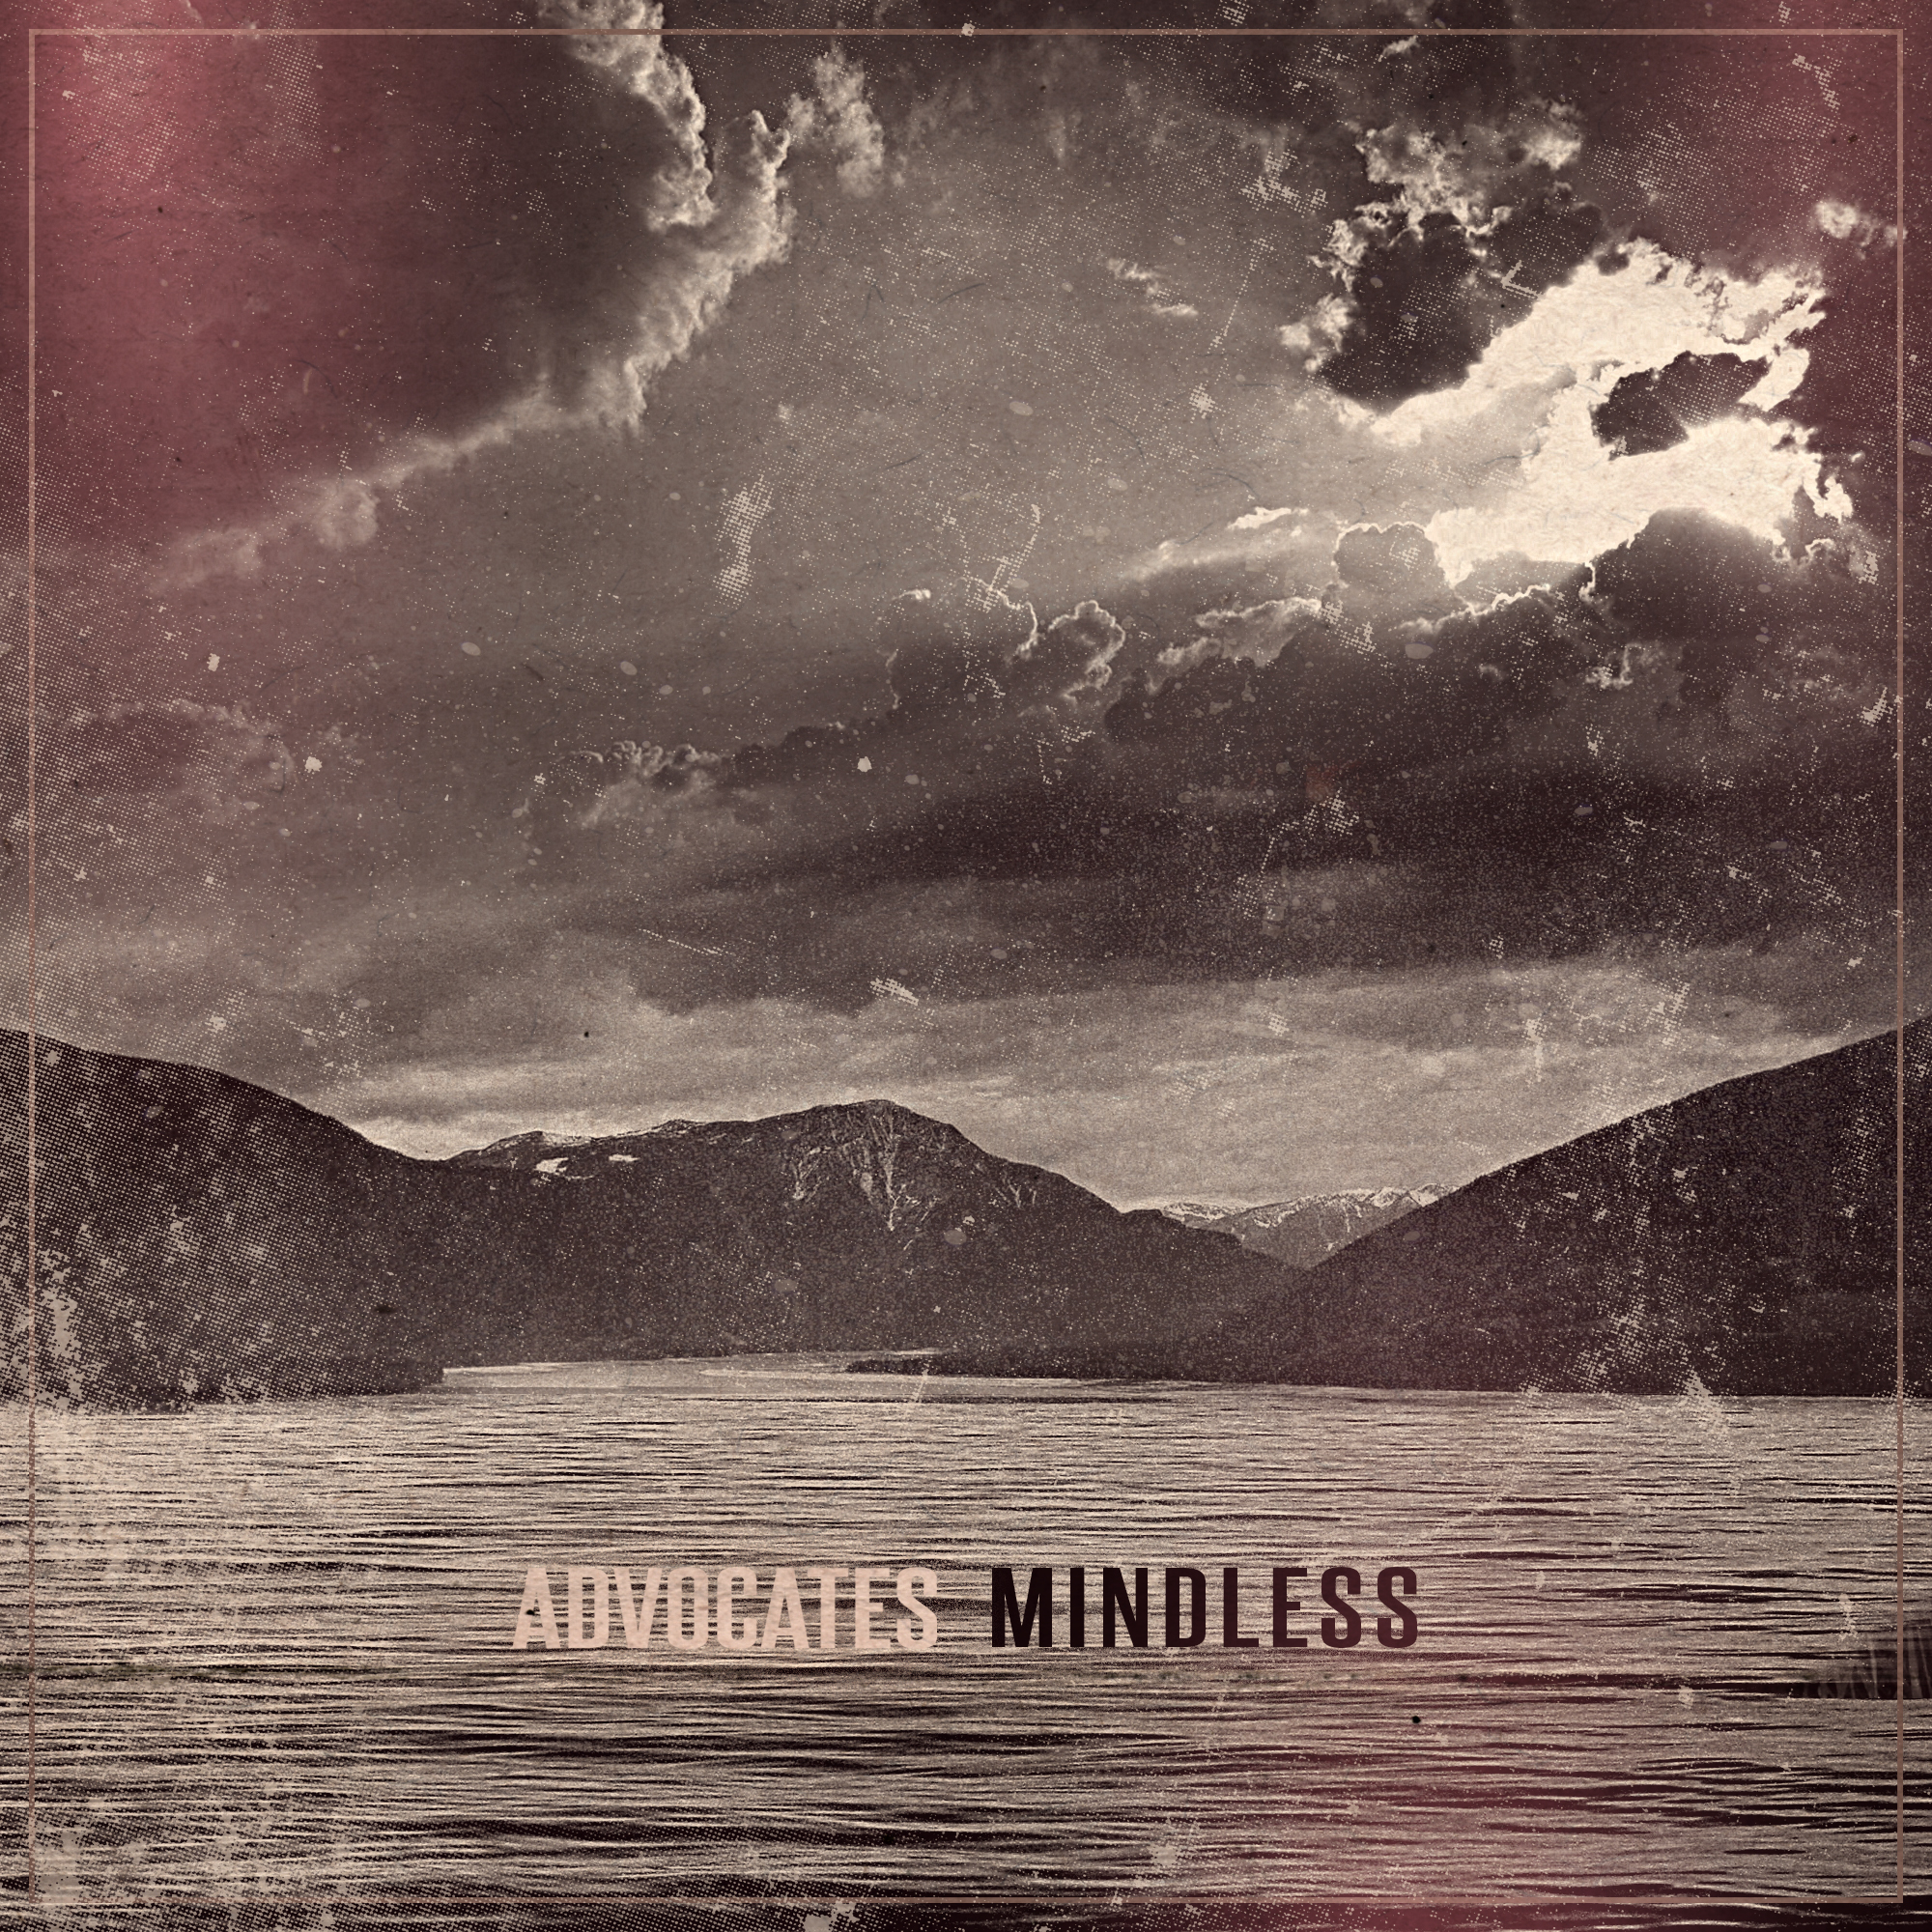 Mindless - Advocates